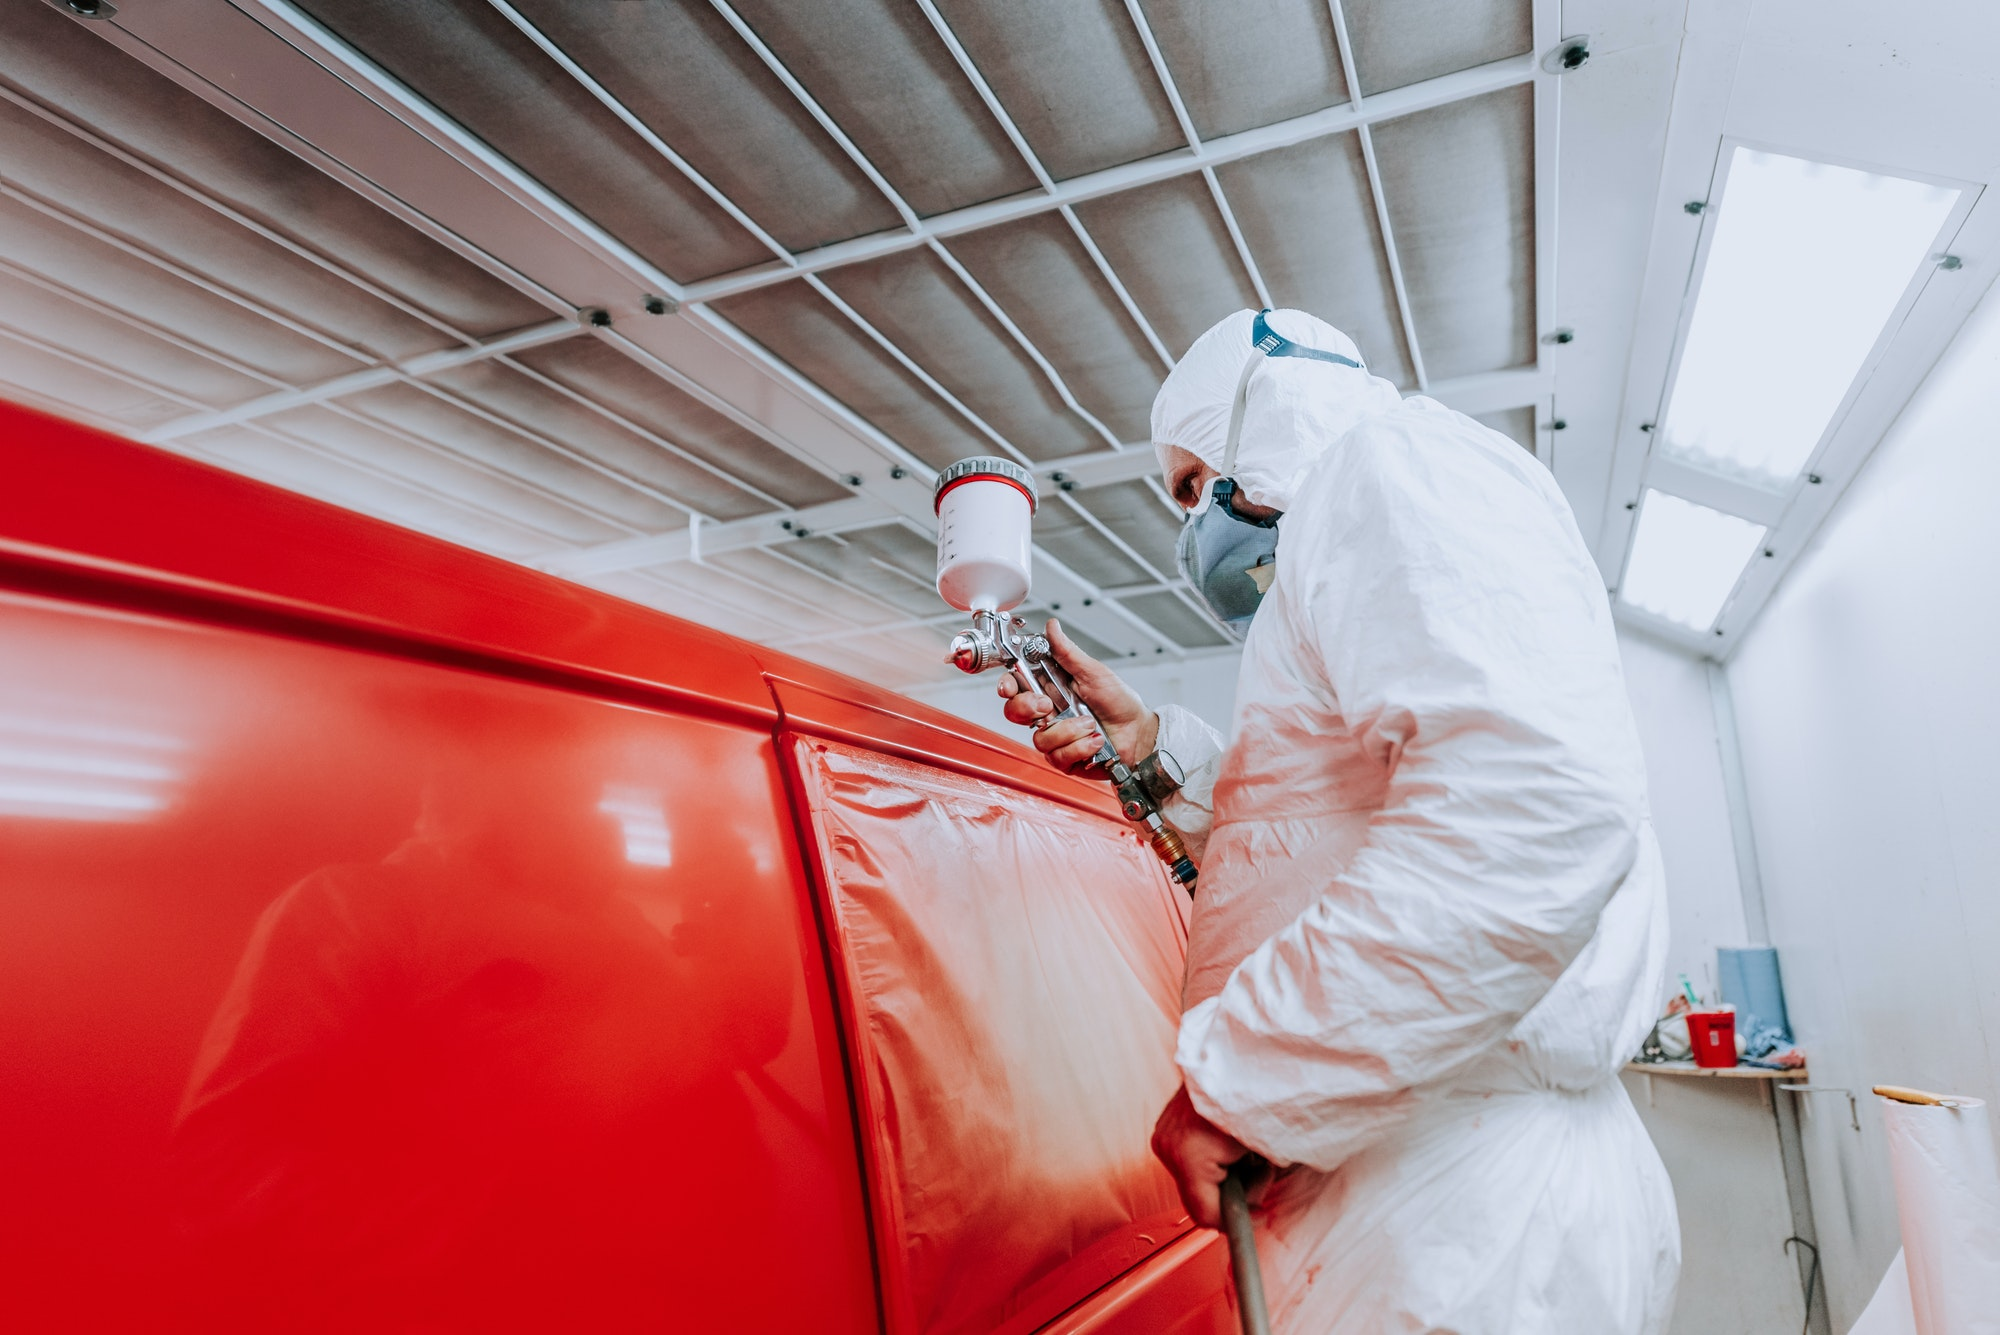 Details of automotive engineer, mechanic painting a red car in workshop